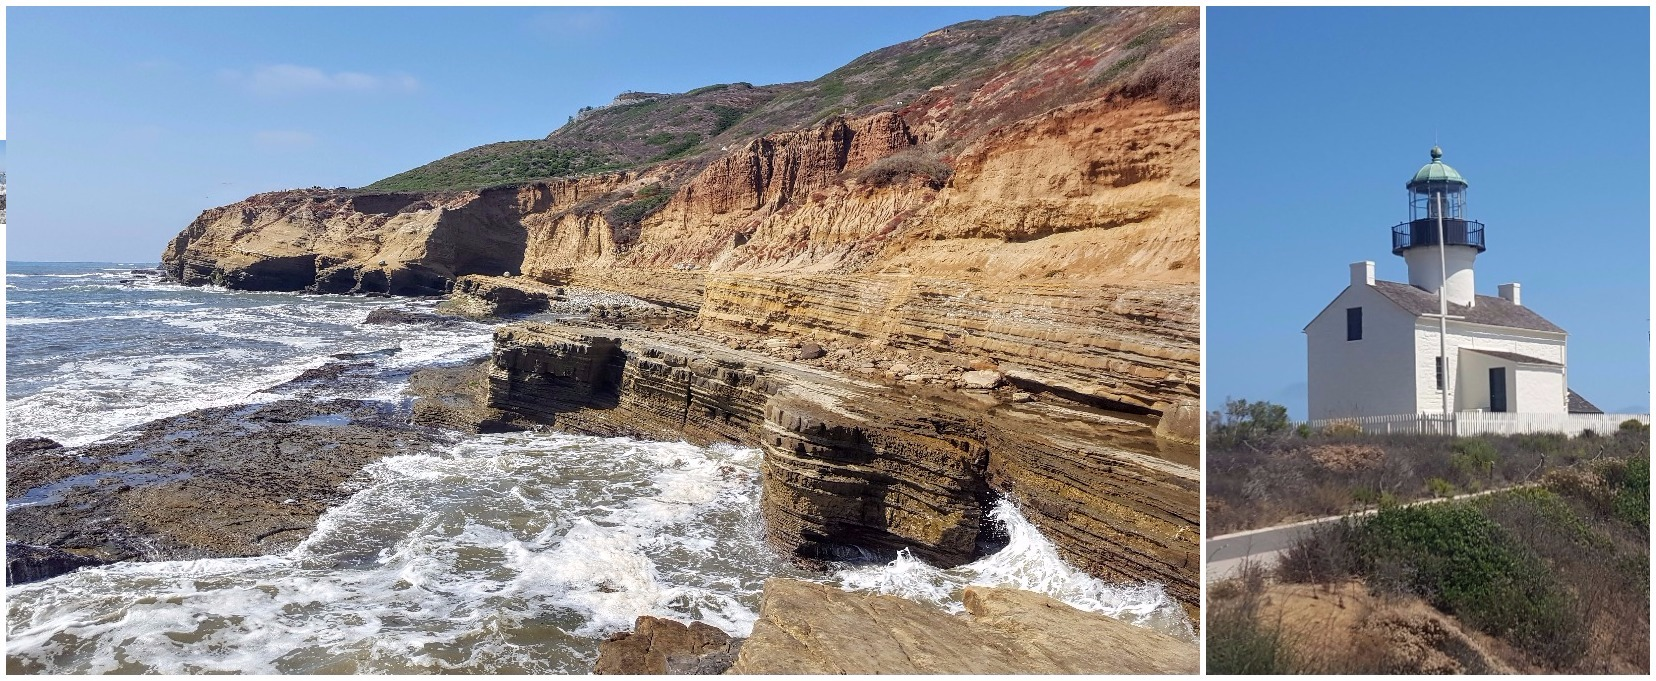 Discovering Point Loma: Ocean Views and State History on the San Diego Bay